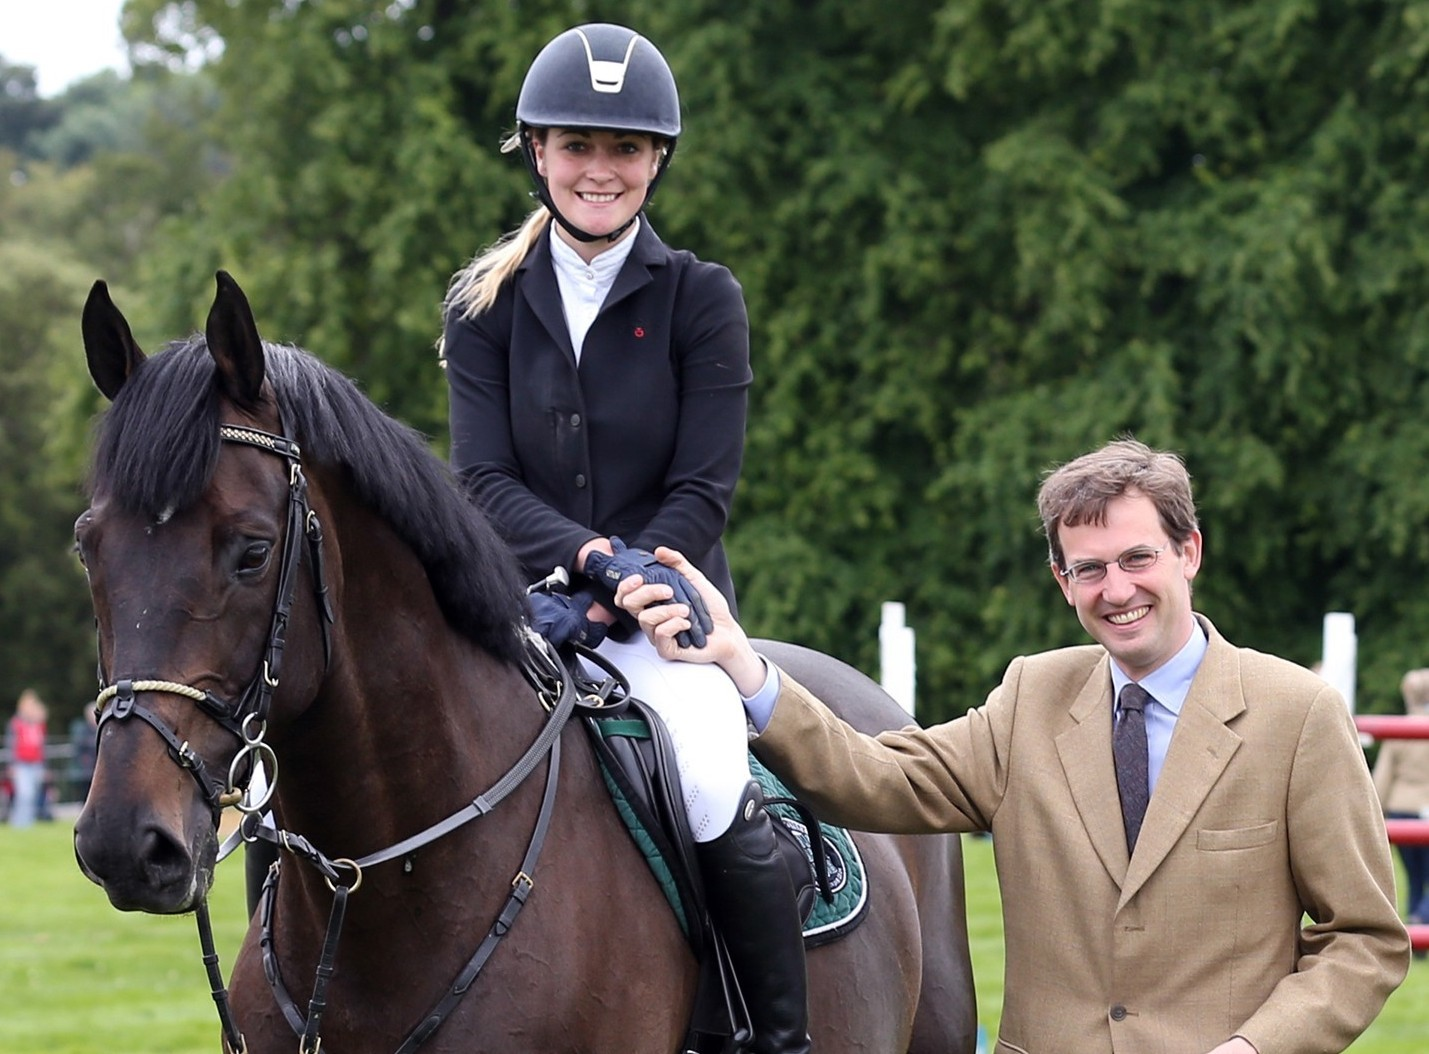 Lucy Guild being presented 1st Prize and the red rossette by Lord Hopetoun after winning the  the show jumping grand prix at Hopetoun Intenational Horse Trials on her horse Titi D'Oase